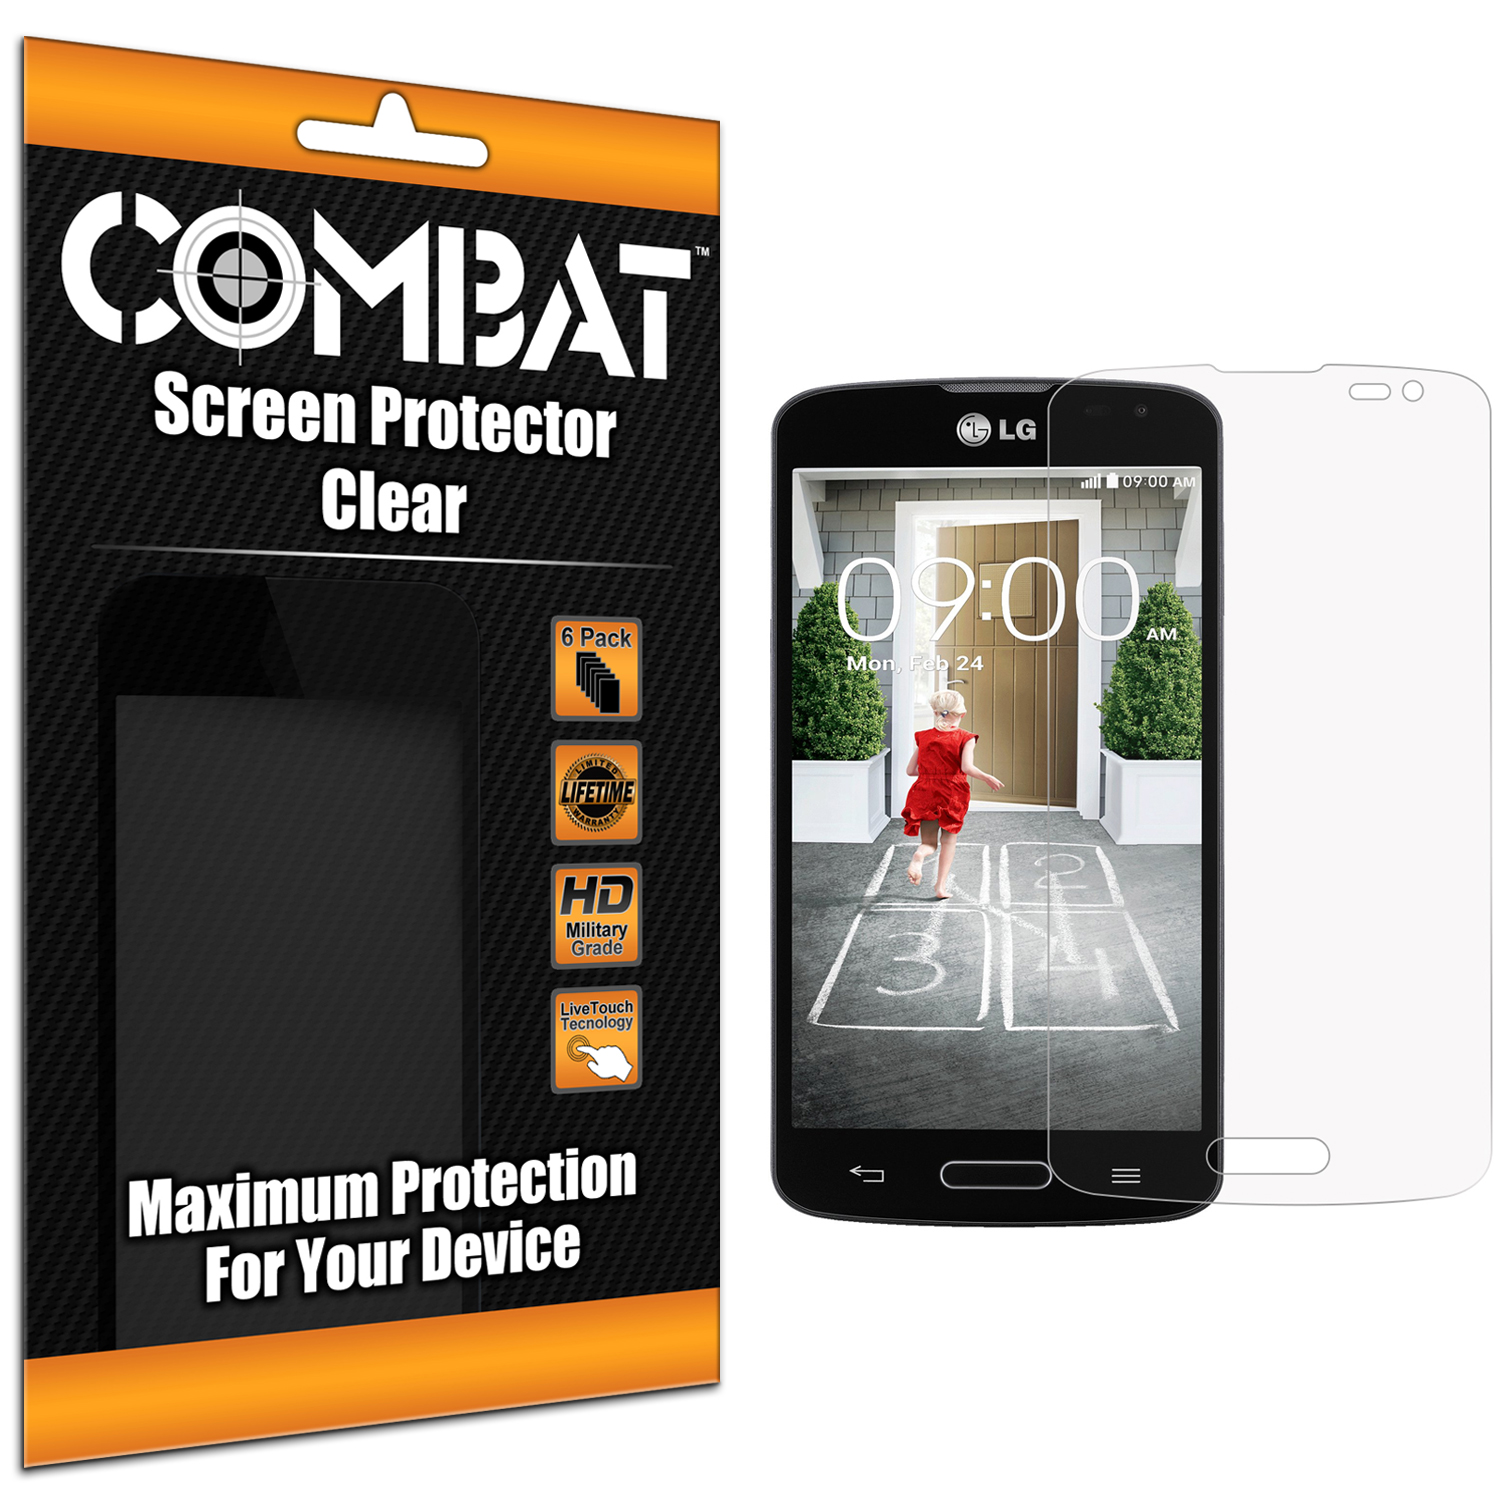 LG Optimus F70 Combat 6 Pack HD Clear Screen Protector